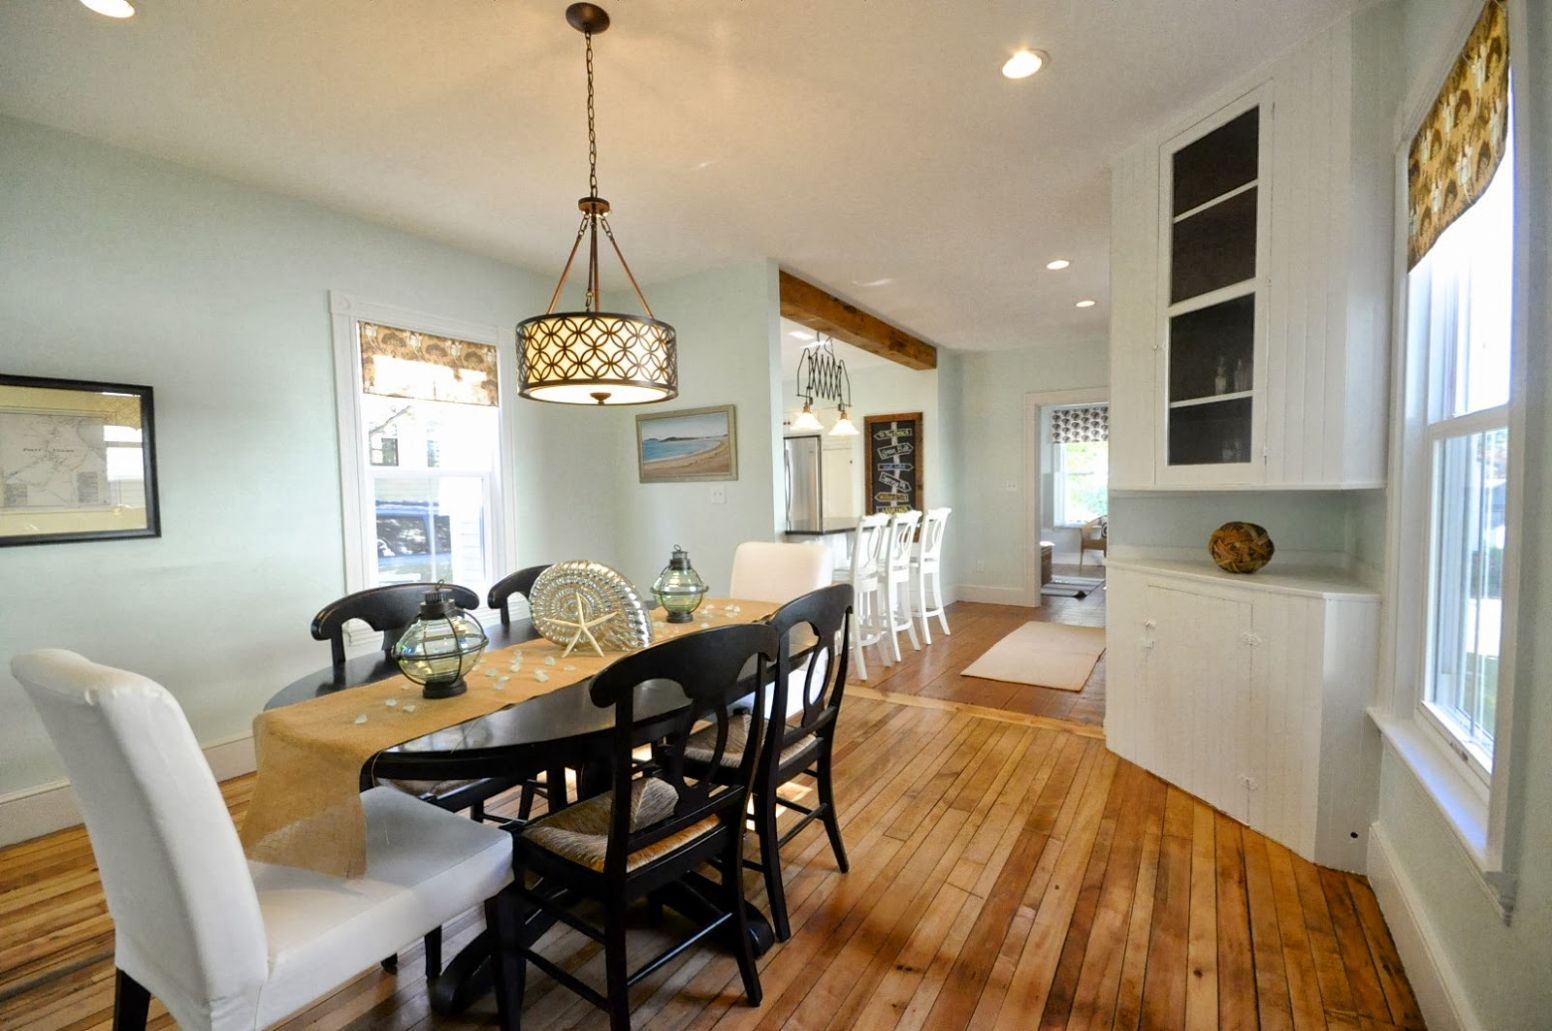 Remodelaholic   Creating an Open Kitchen and Dining Room - dining room renovation ideas